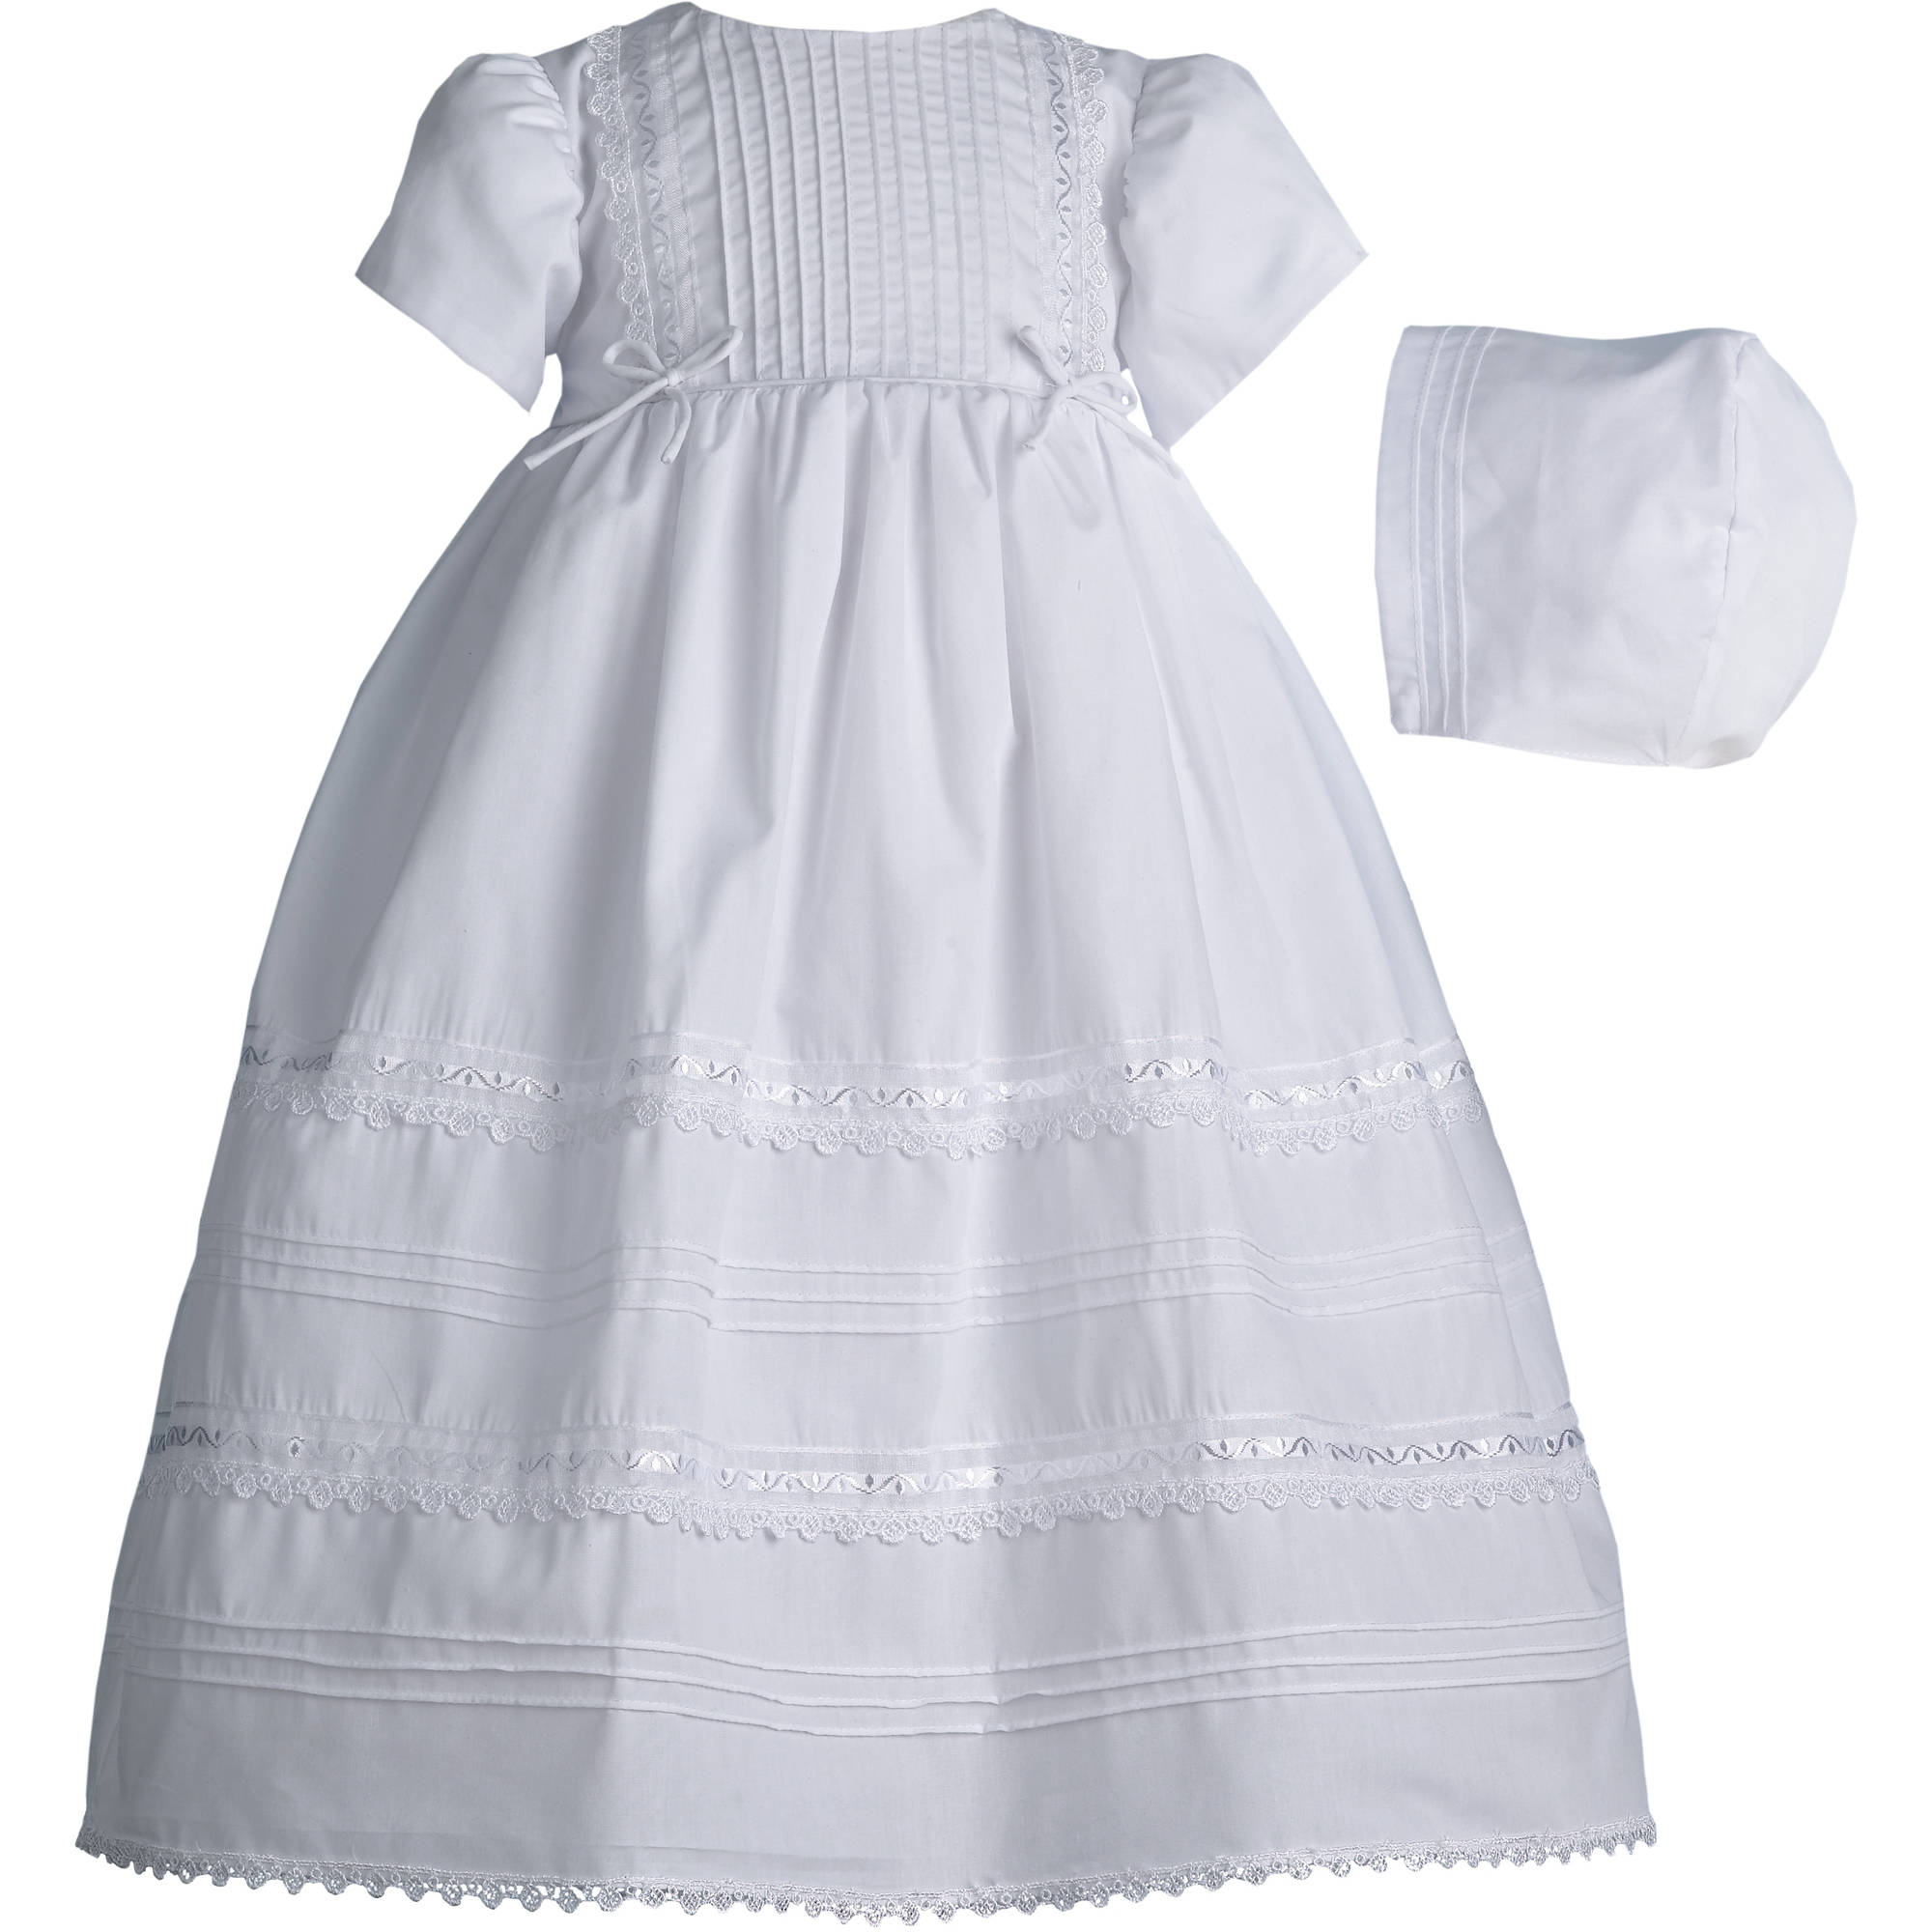 Christening Baptism Newborn Baby Girl Special Occasion Dress With Tucking